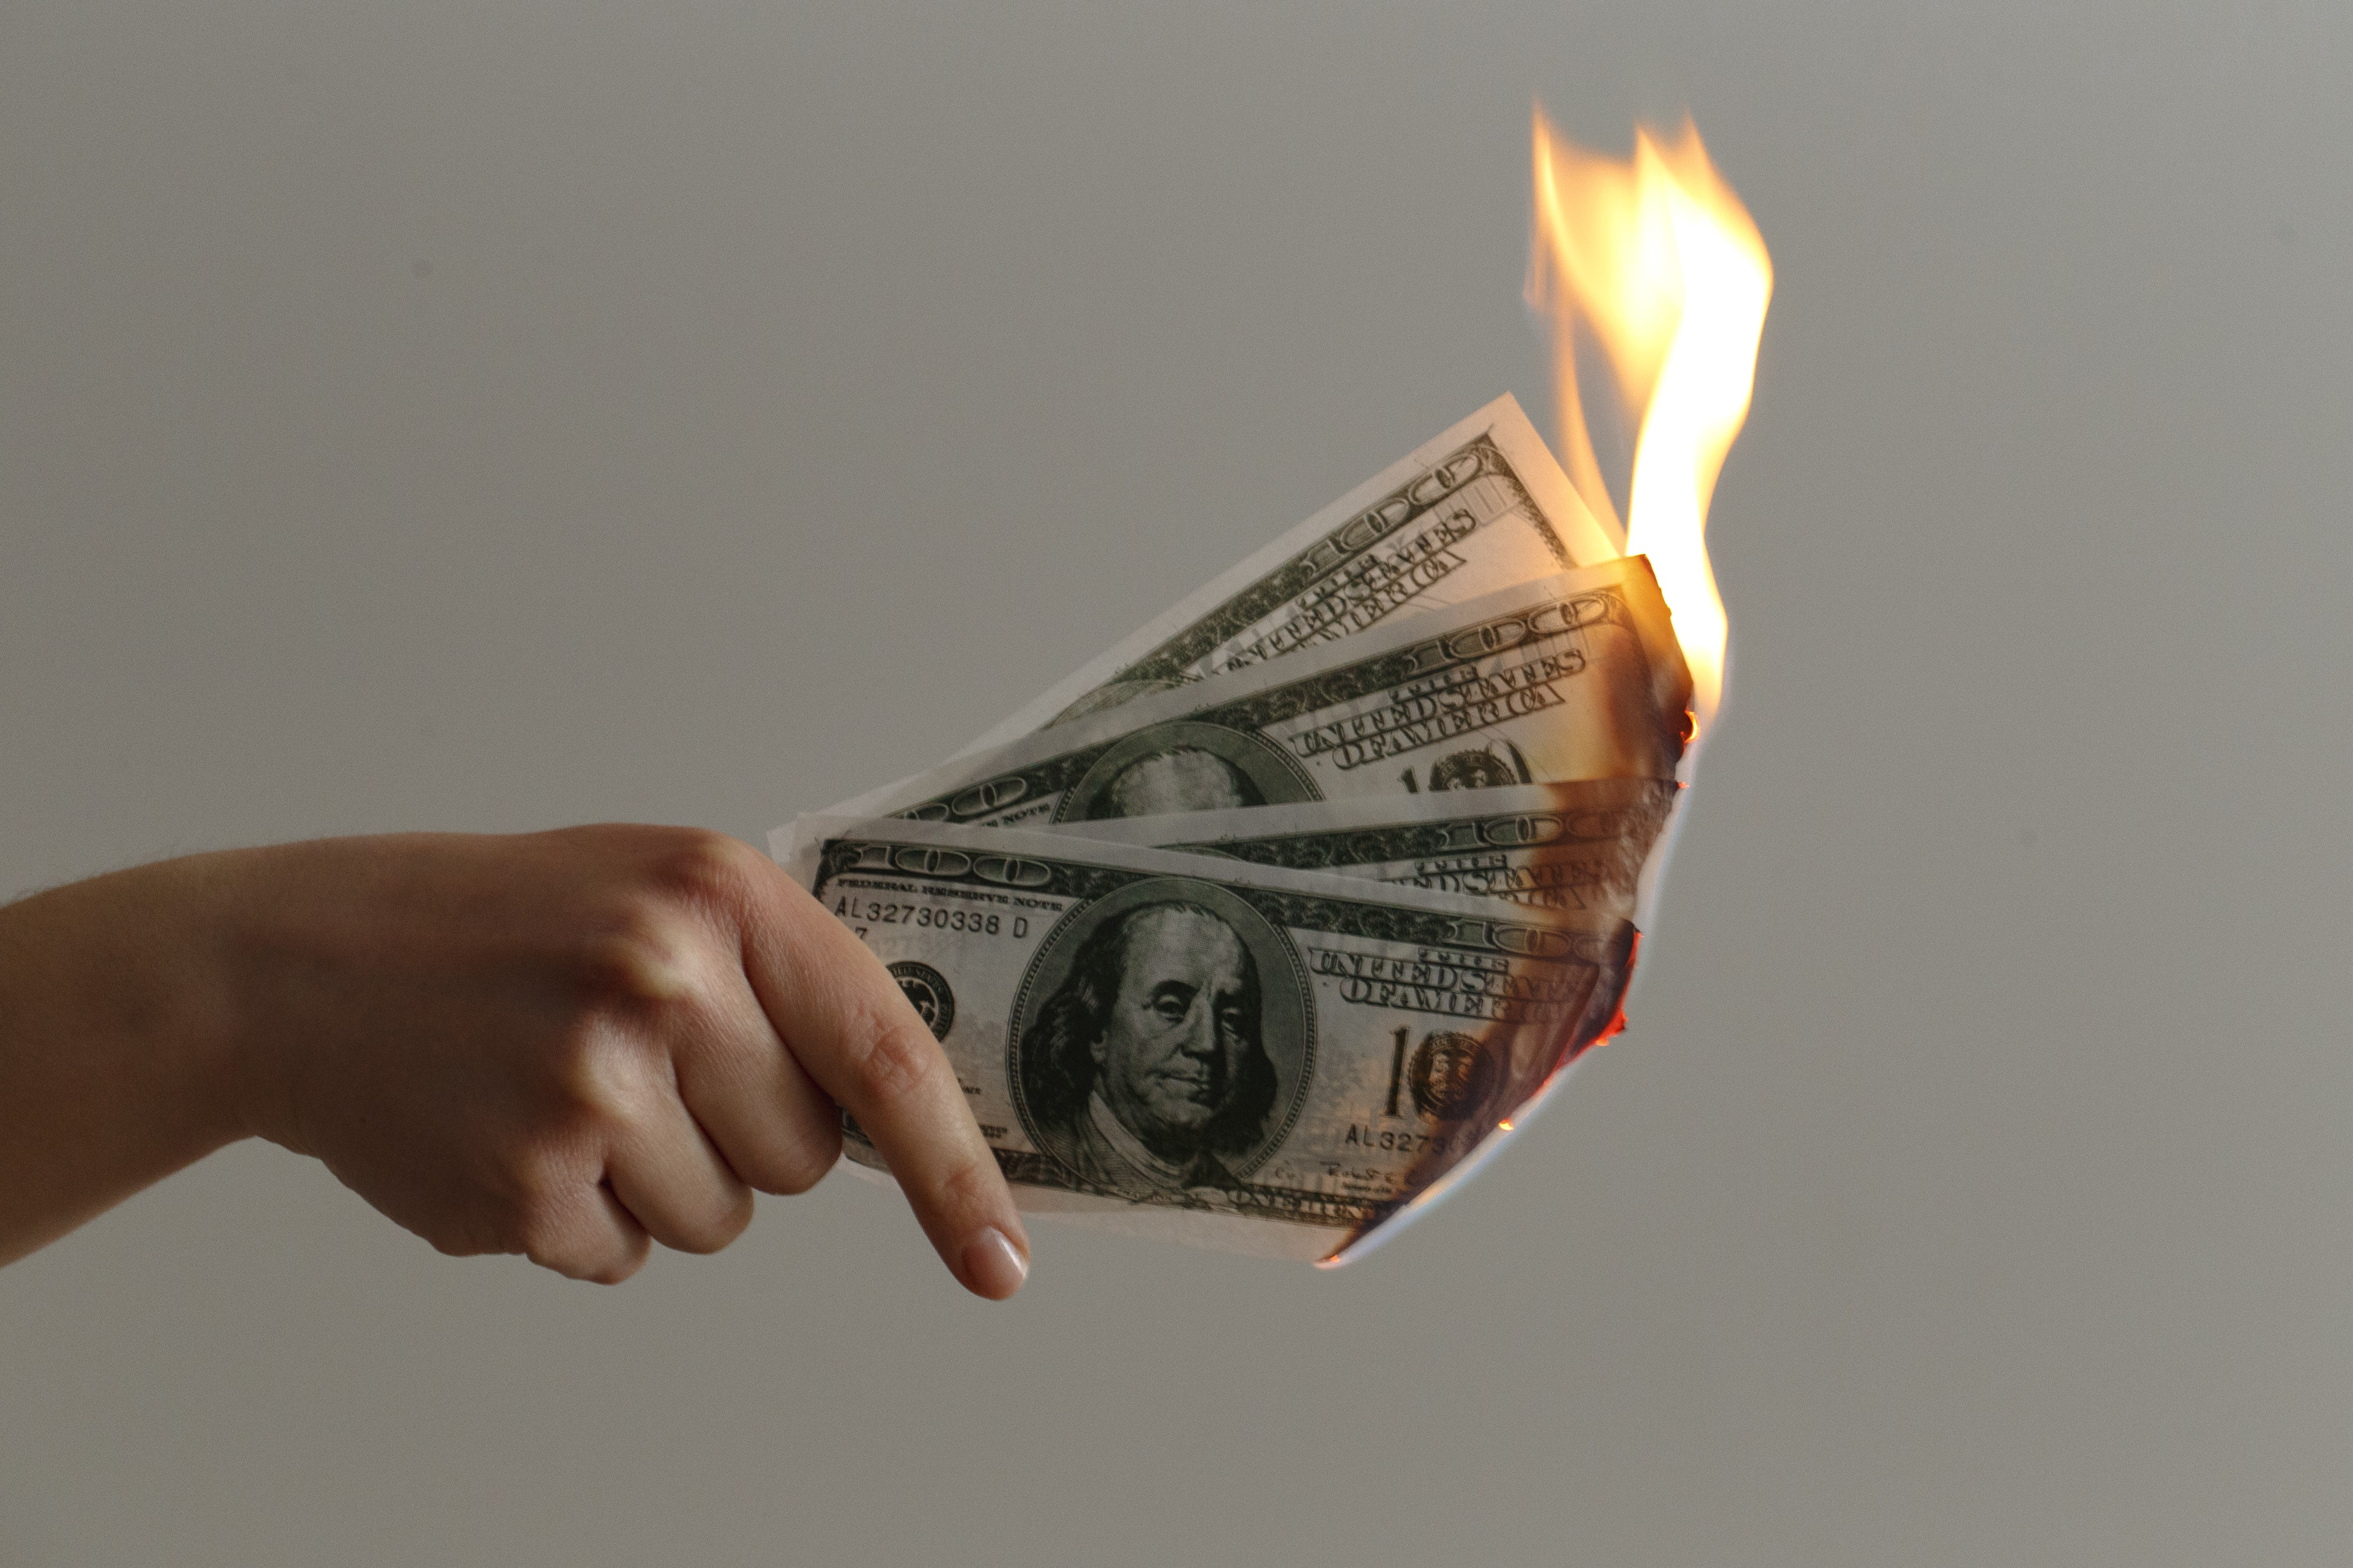 Don't burn your money, like this image. Use the free trials offered by both Miro & Mural to test them out.